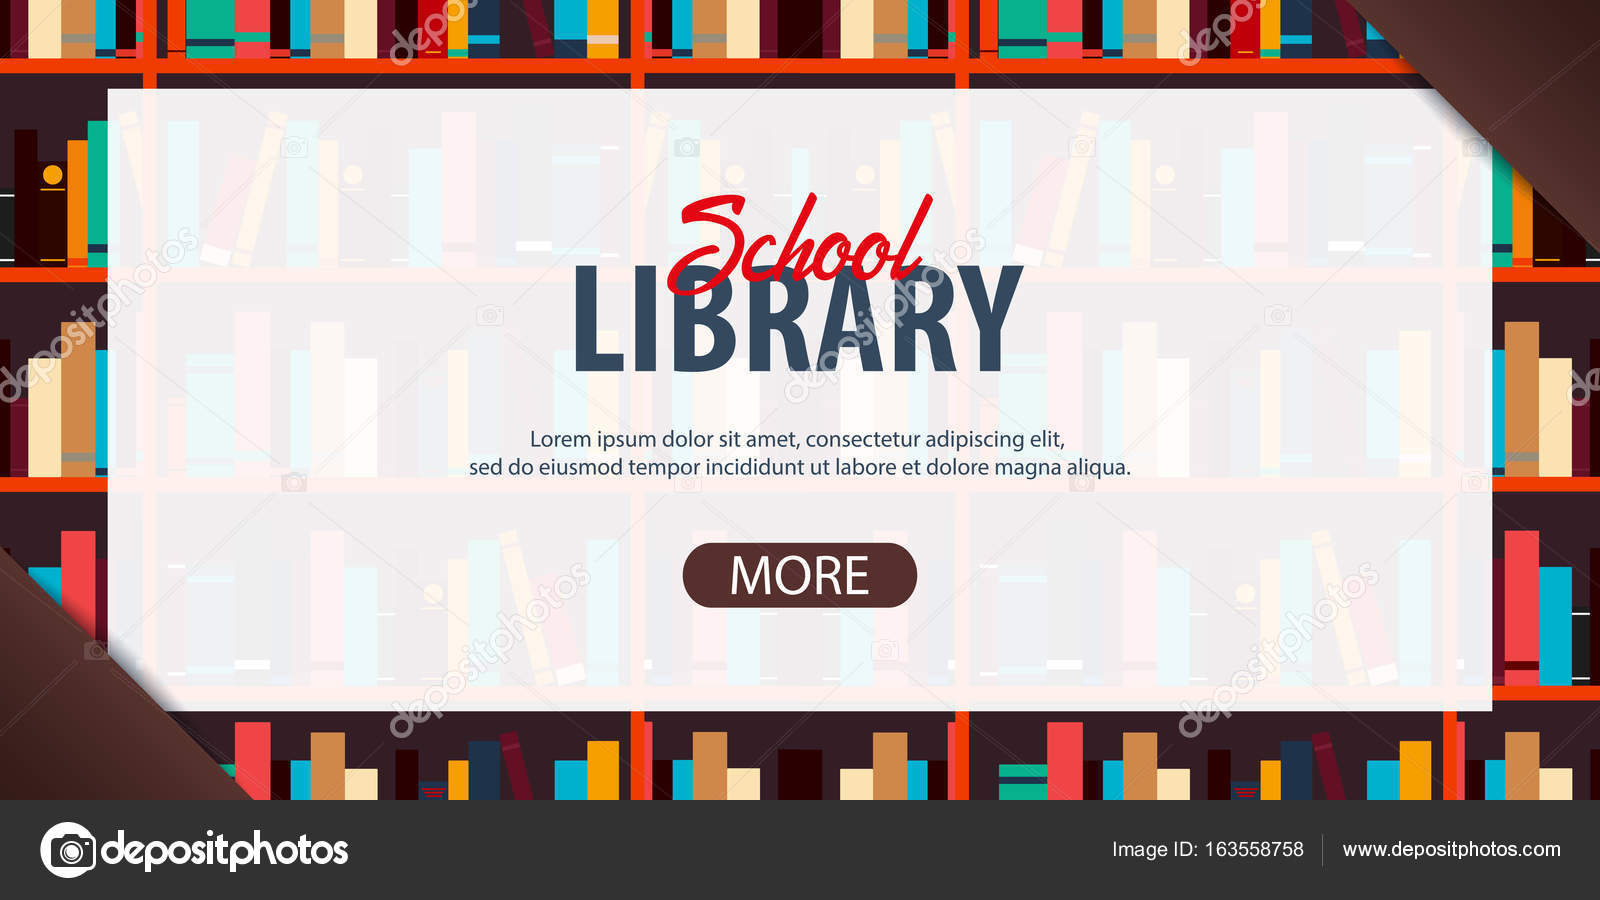 School Library Banners Medievil Banners